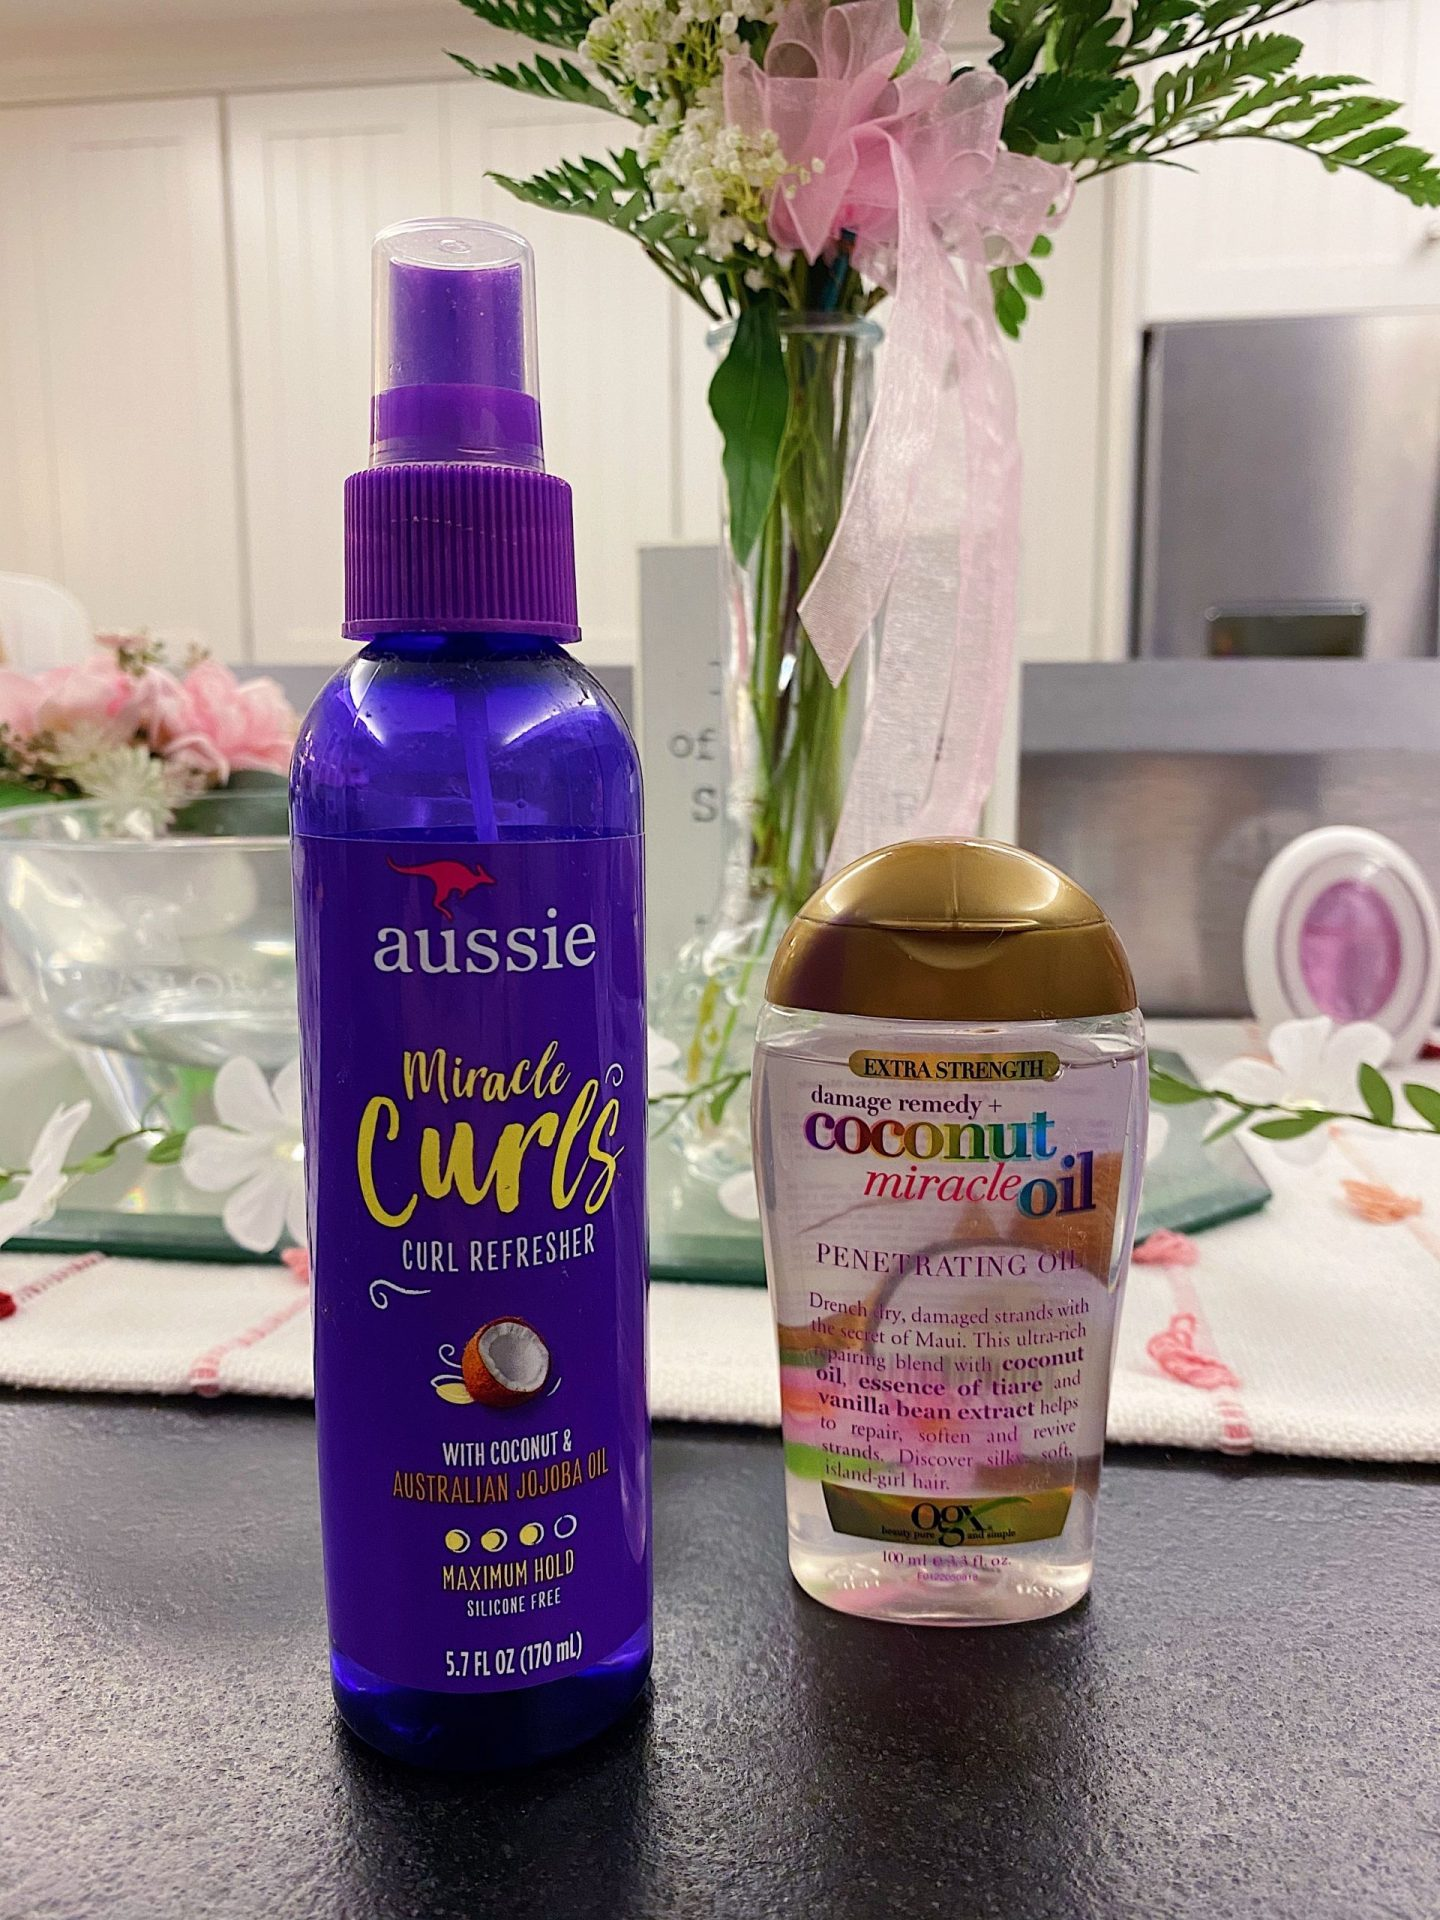 My favorite curl refresher products